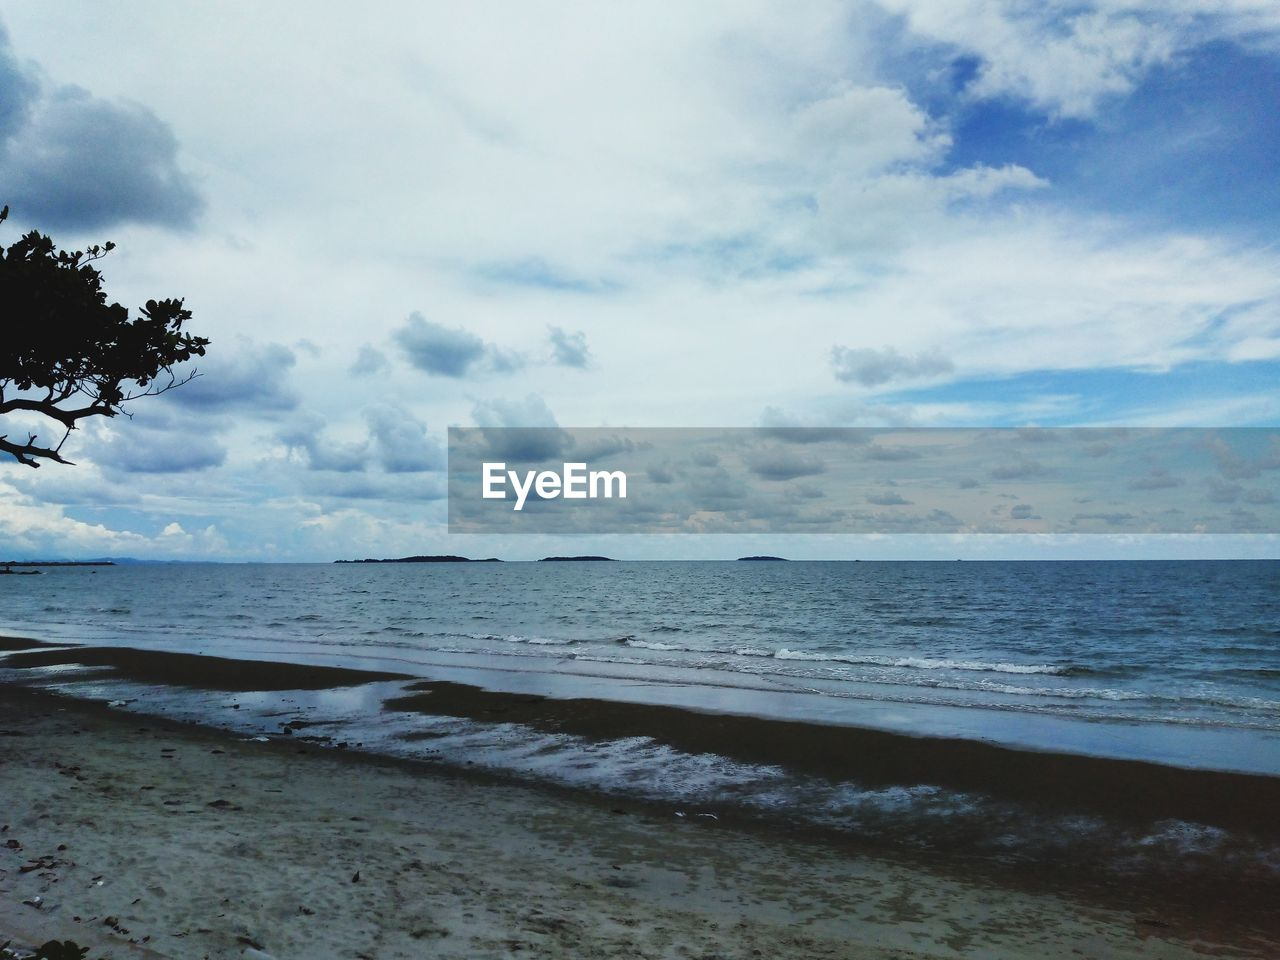 sea, water, beach, land, sky, beauty in nature, cloud - sky, tranquility, scenics - nature, horizon, horizon over water, tranquil scene, sand, nature, tree, no people, outdoors, day, non-urban scene